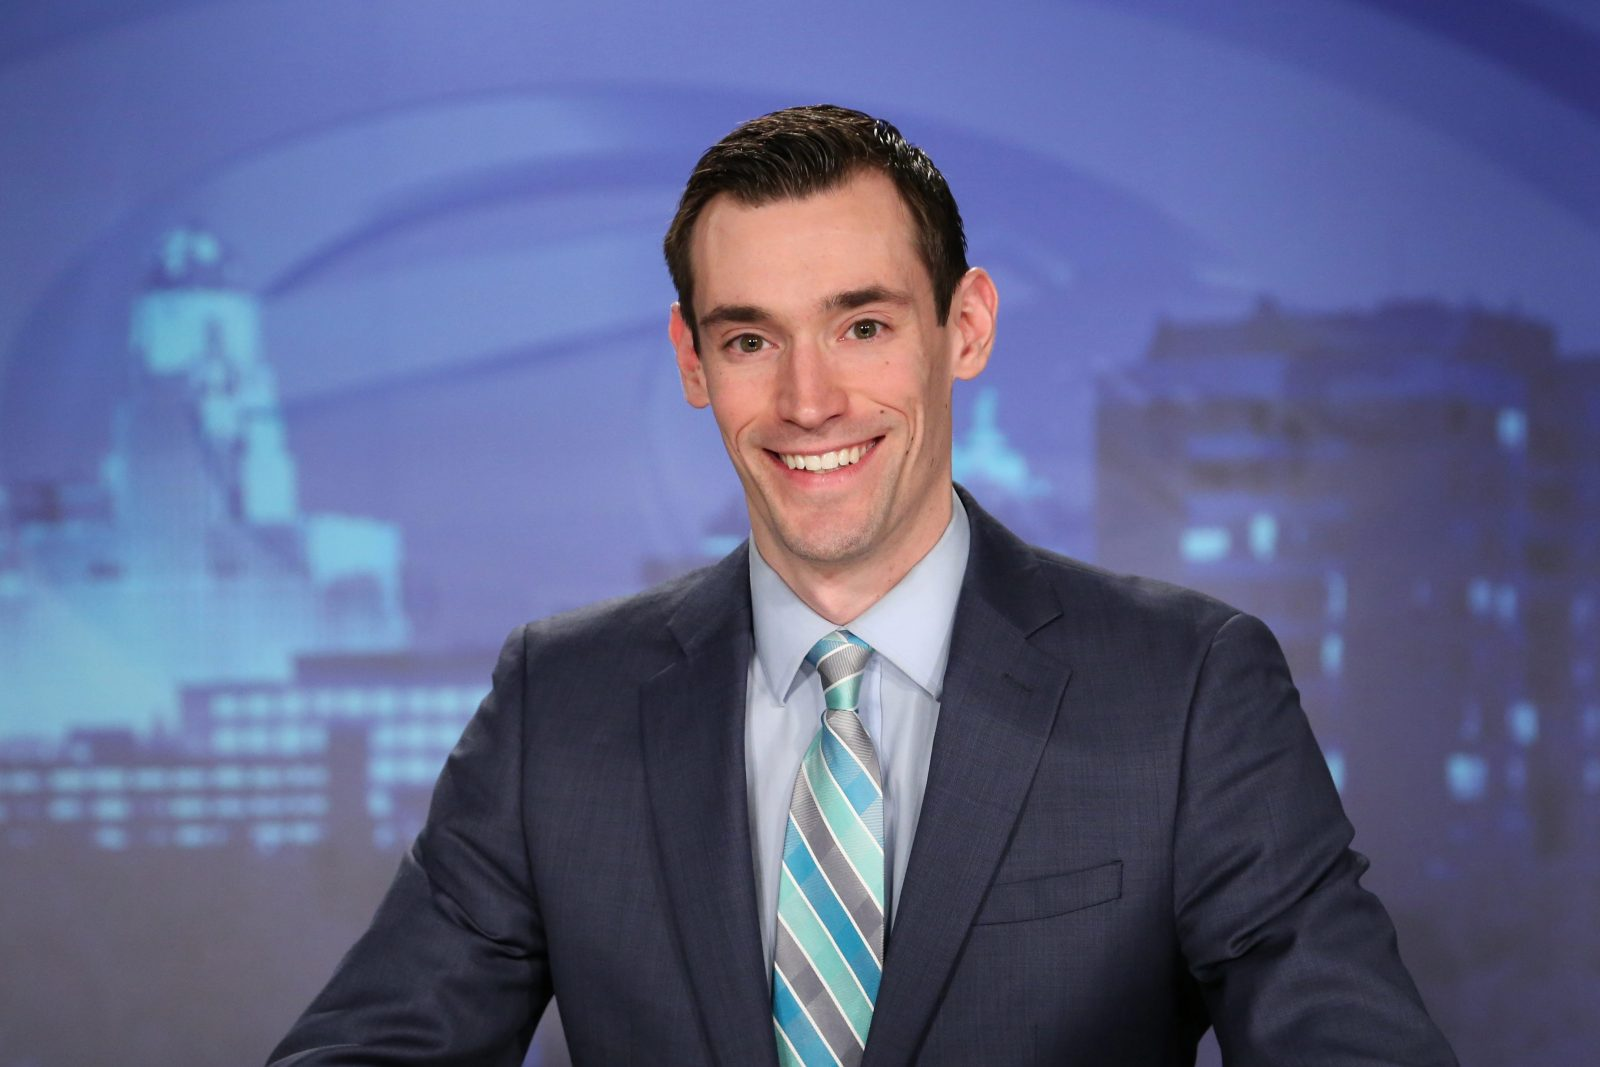 Joe Buscaglia will be leaving as sports director at Channel 7 in August.